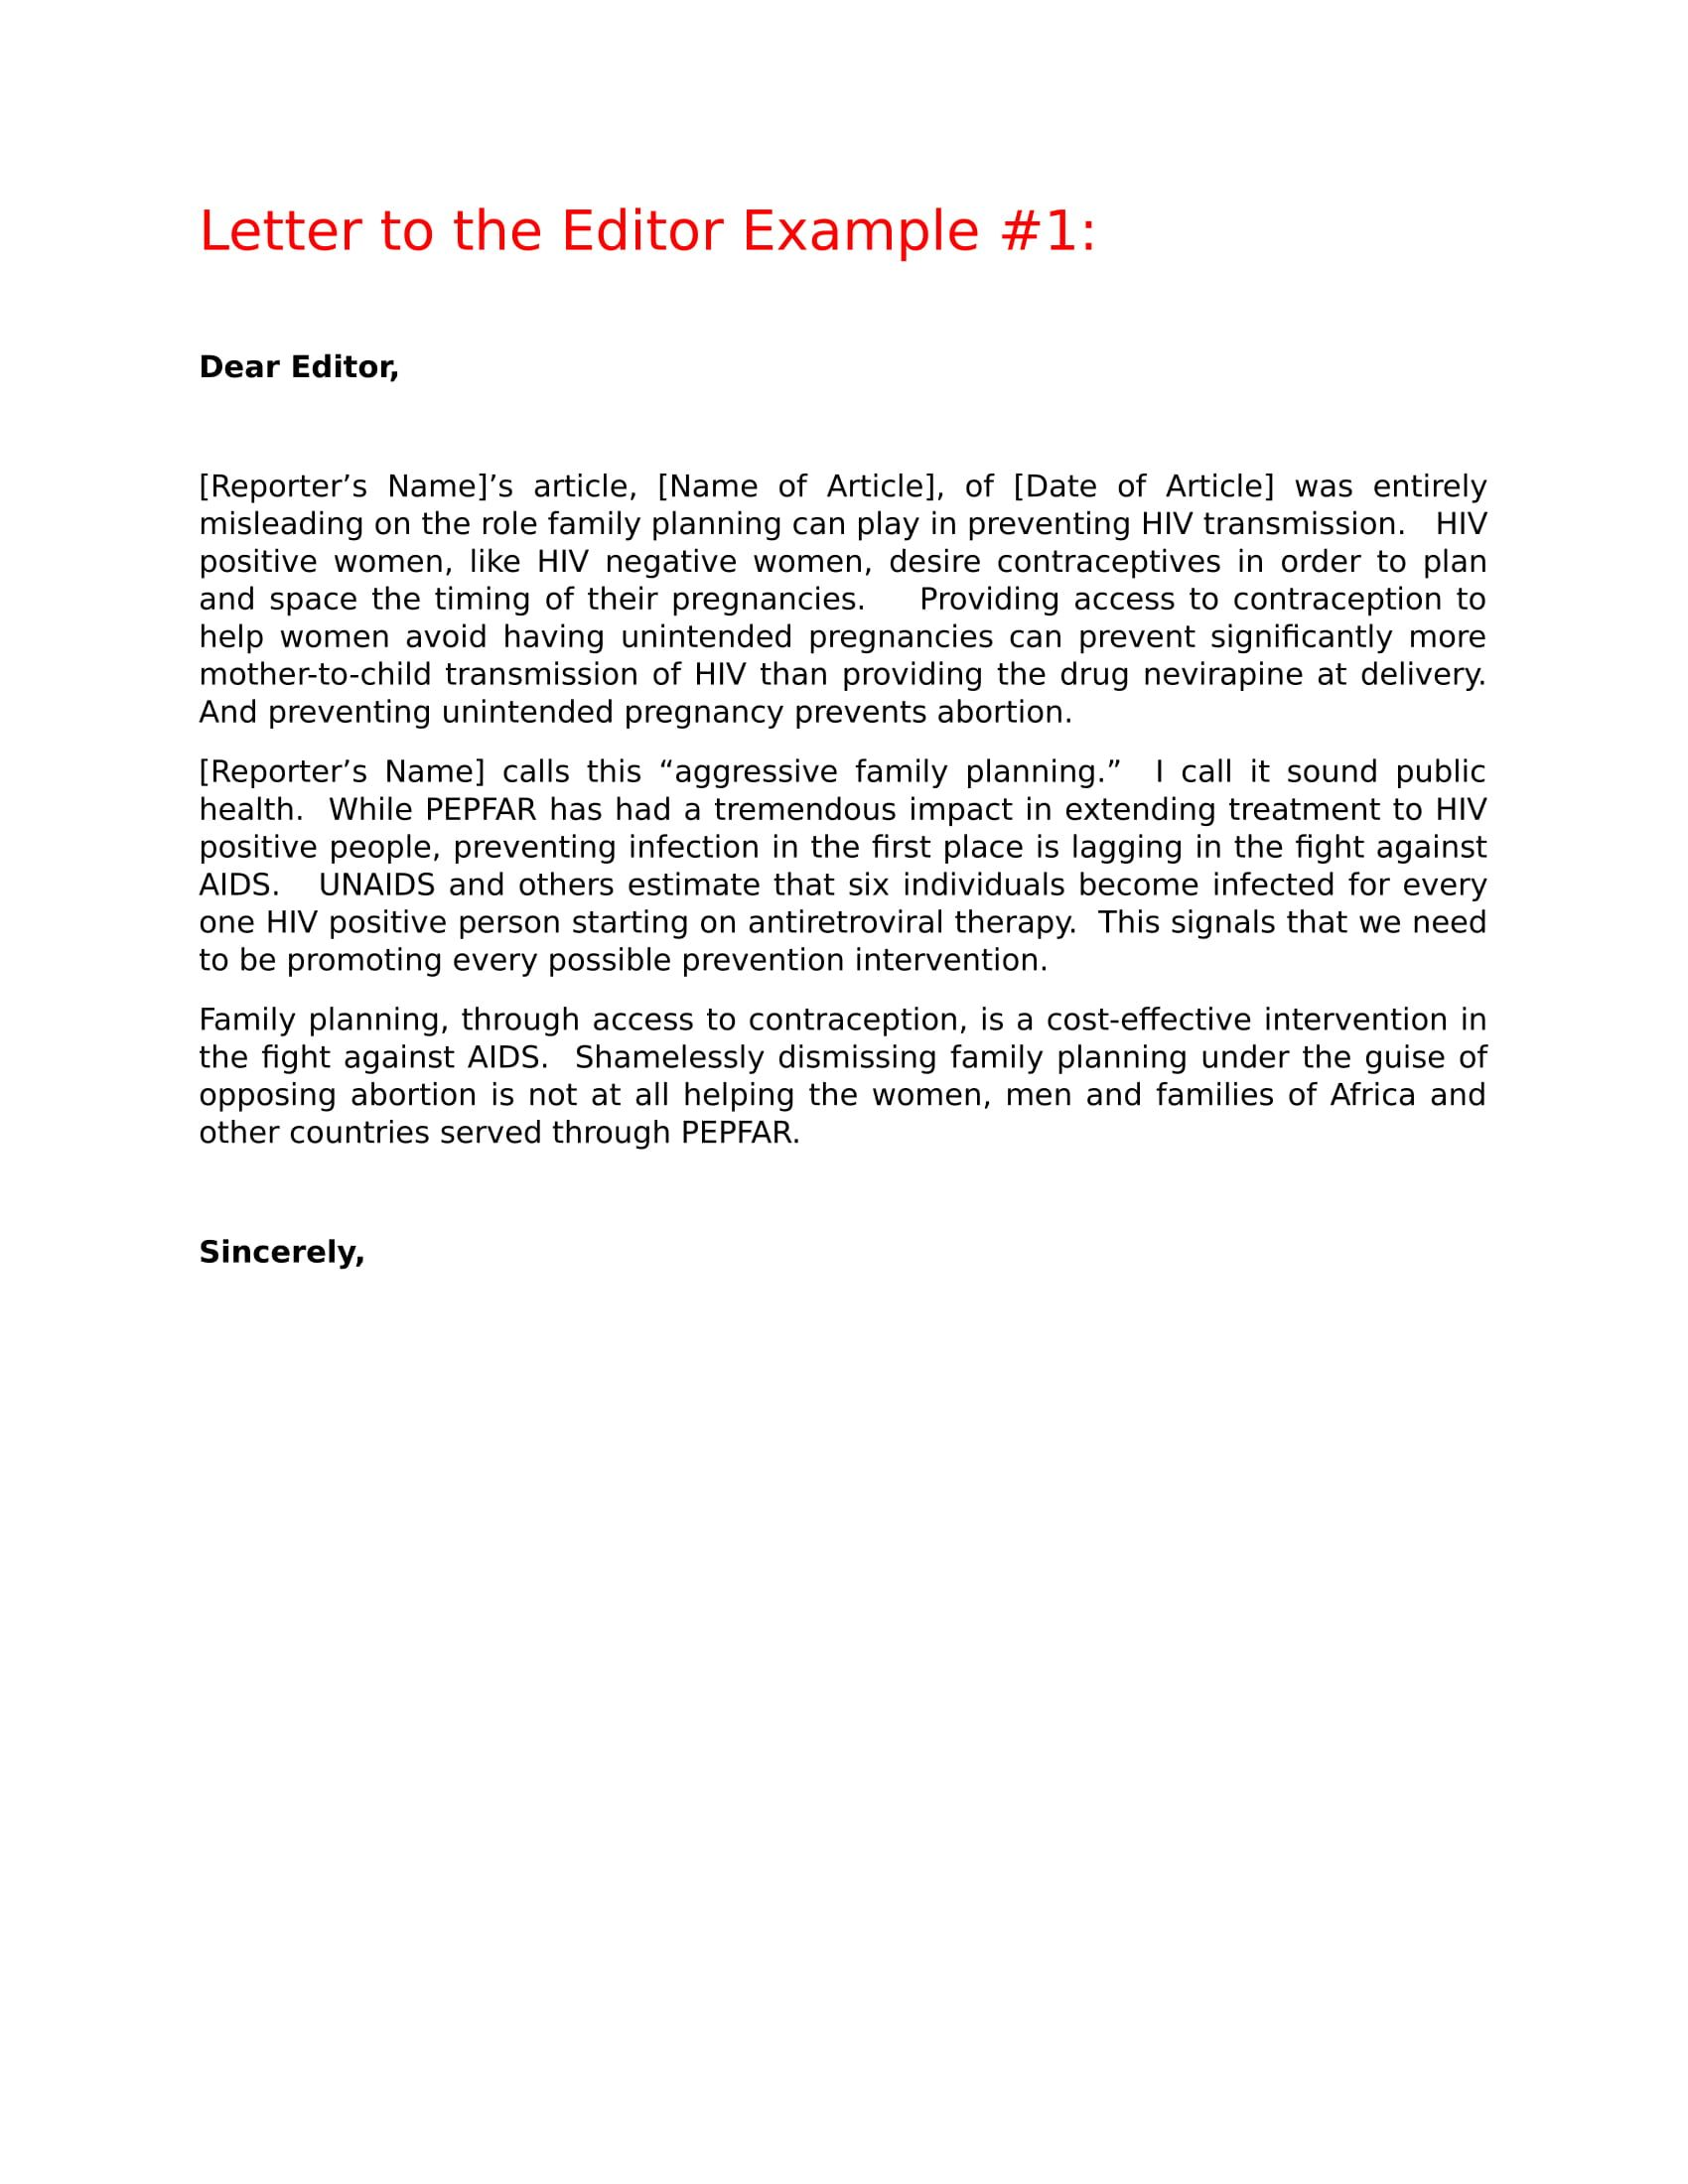 Letter to the Editor Format Template Example Letter to